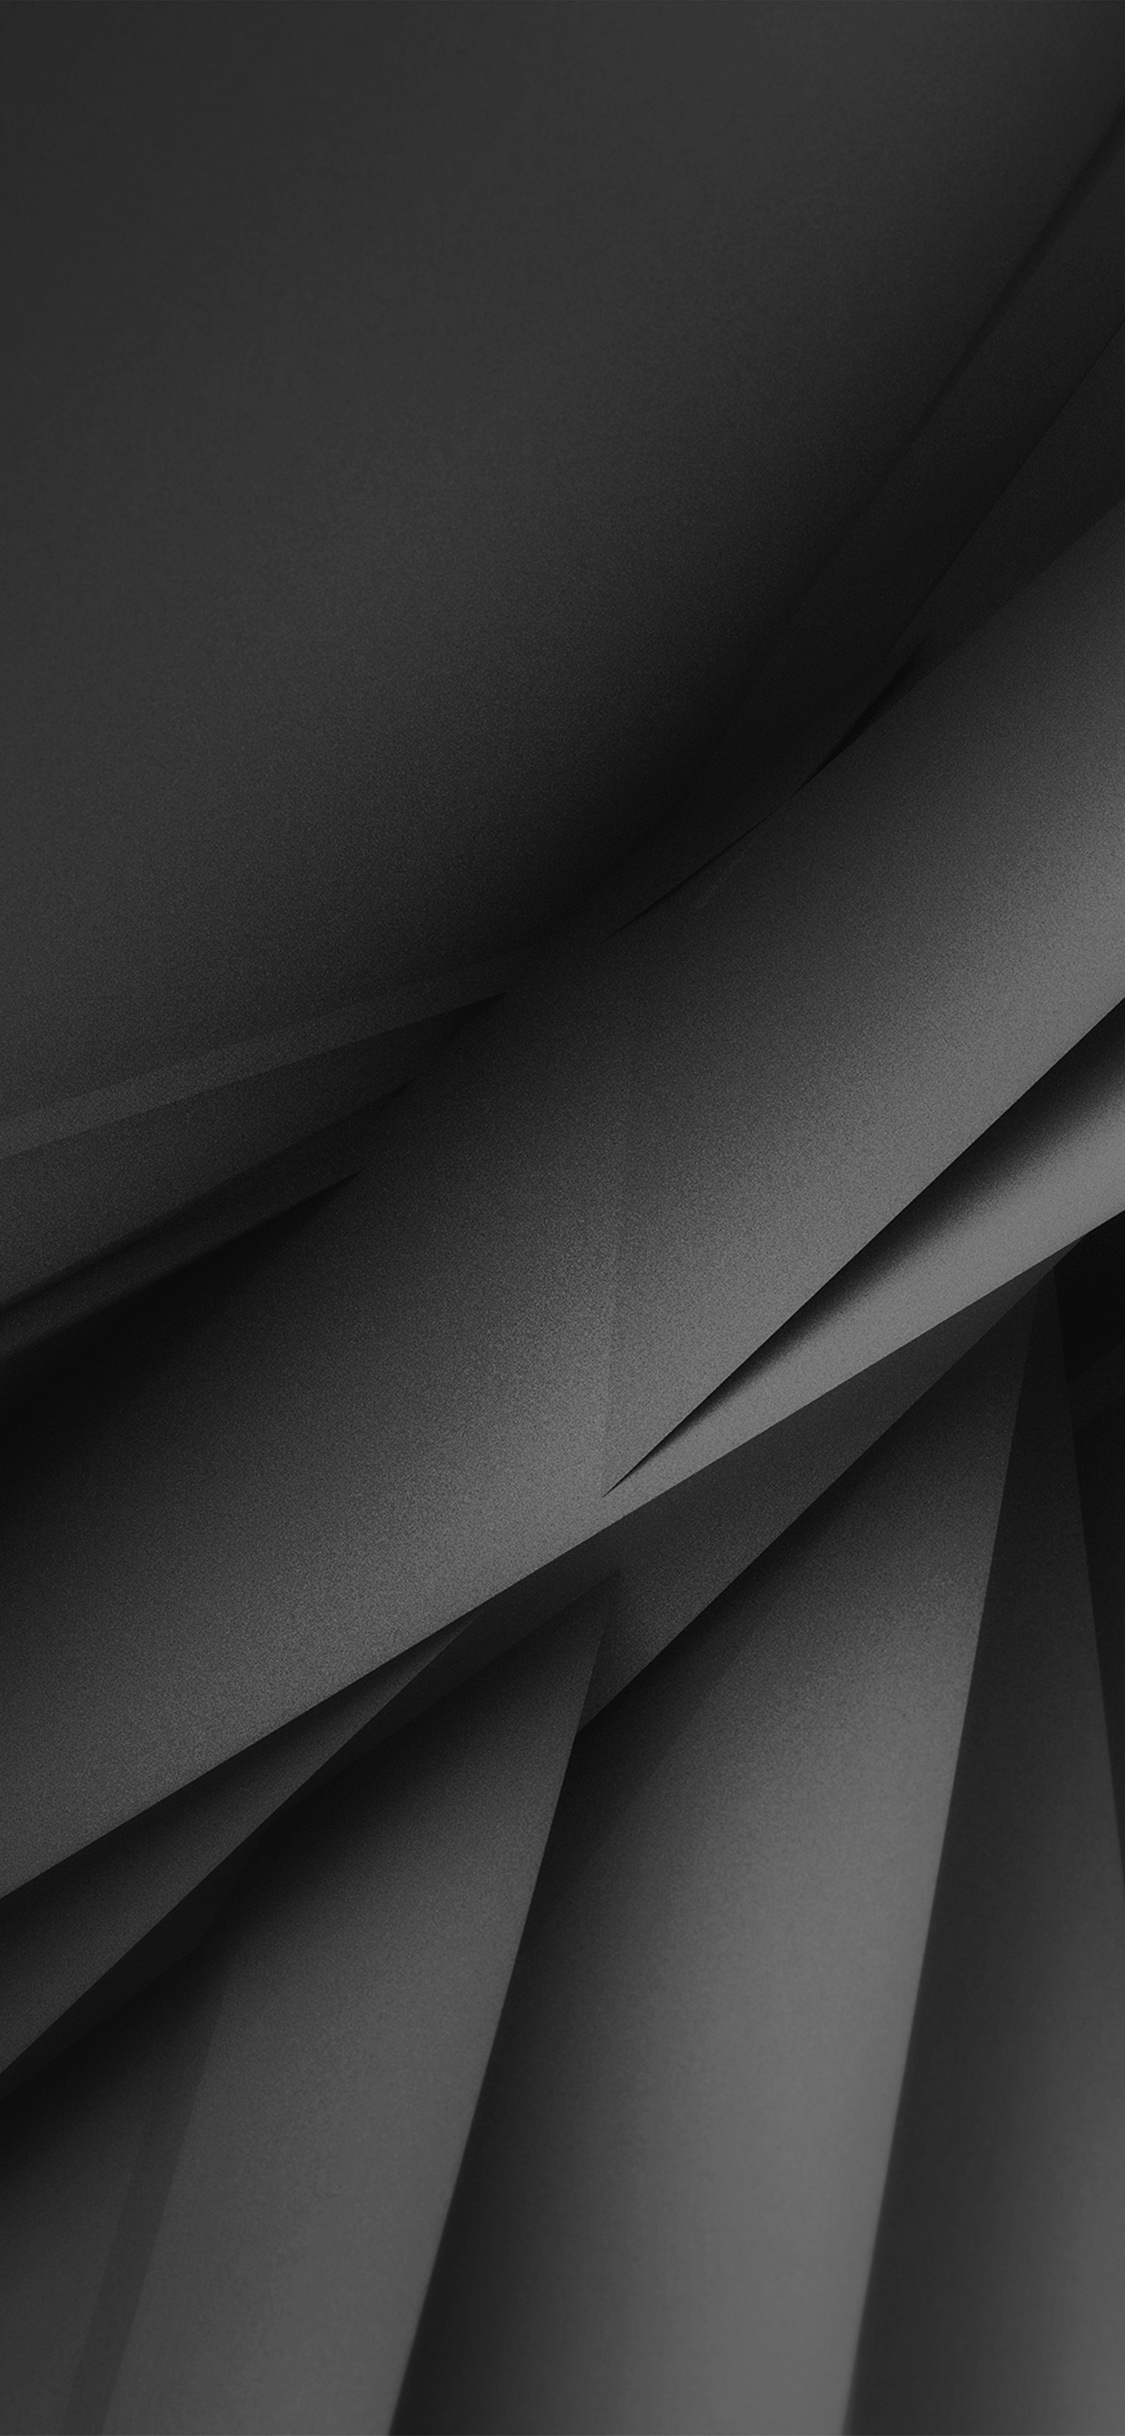 iPhonexpapers.com-Apple-iPhone-wallpaper-vs30-abstract-background-line-shape-gray-minimal3d-pattern-bw-dark